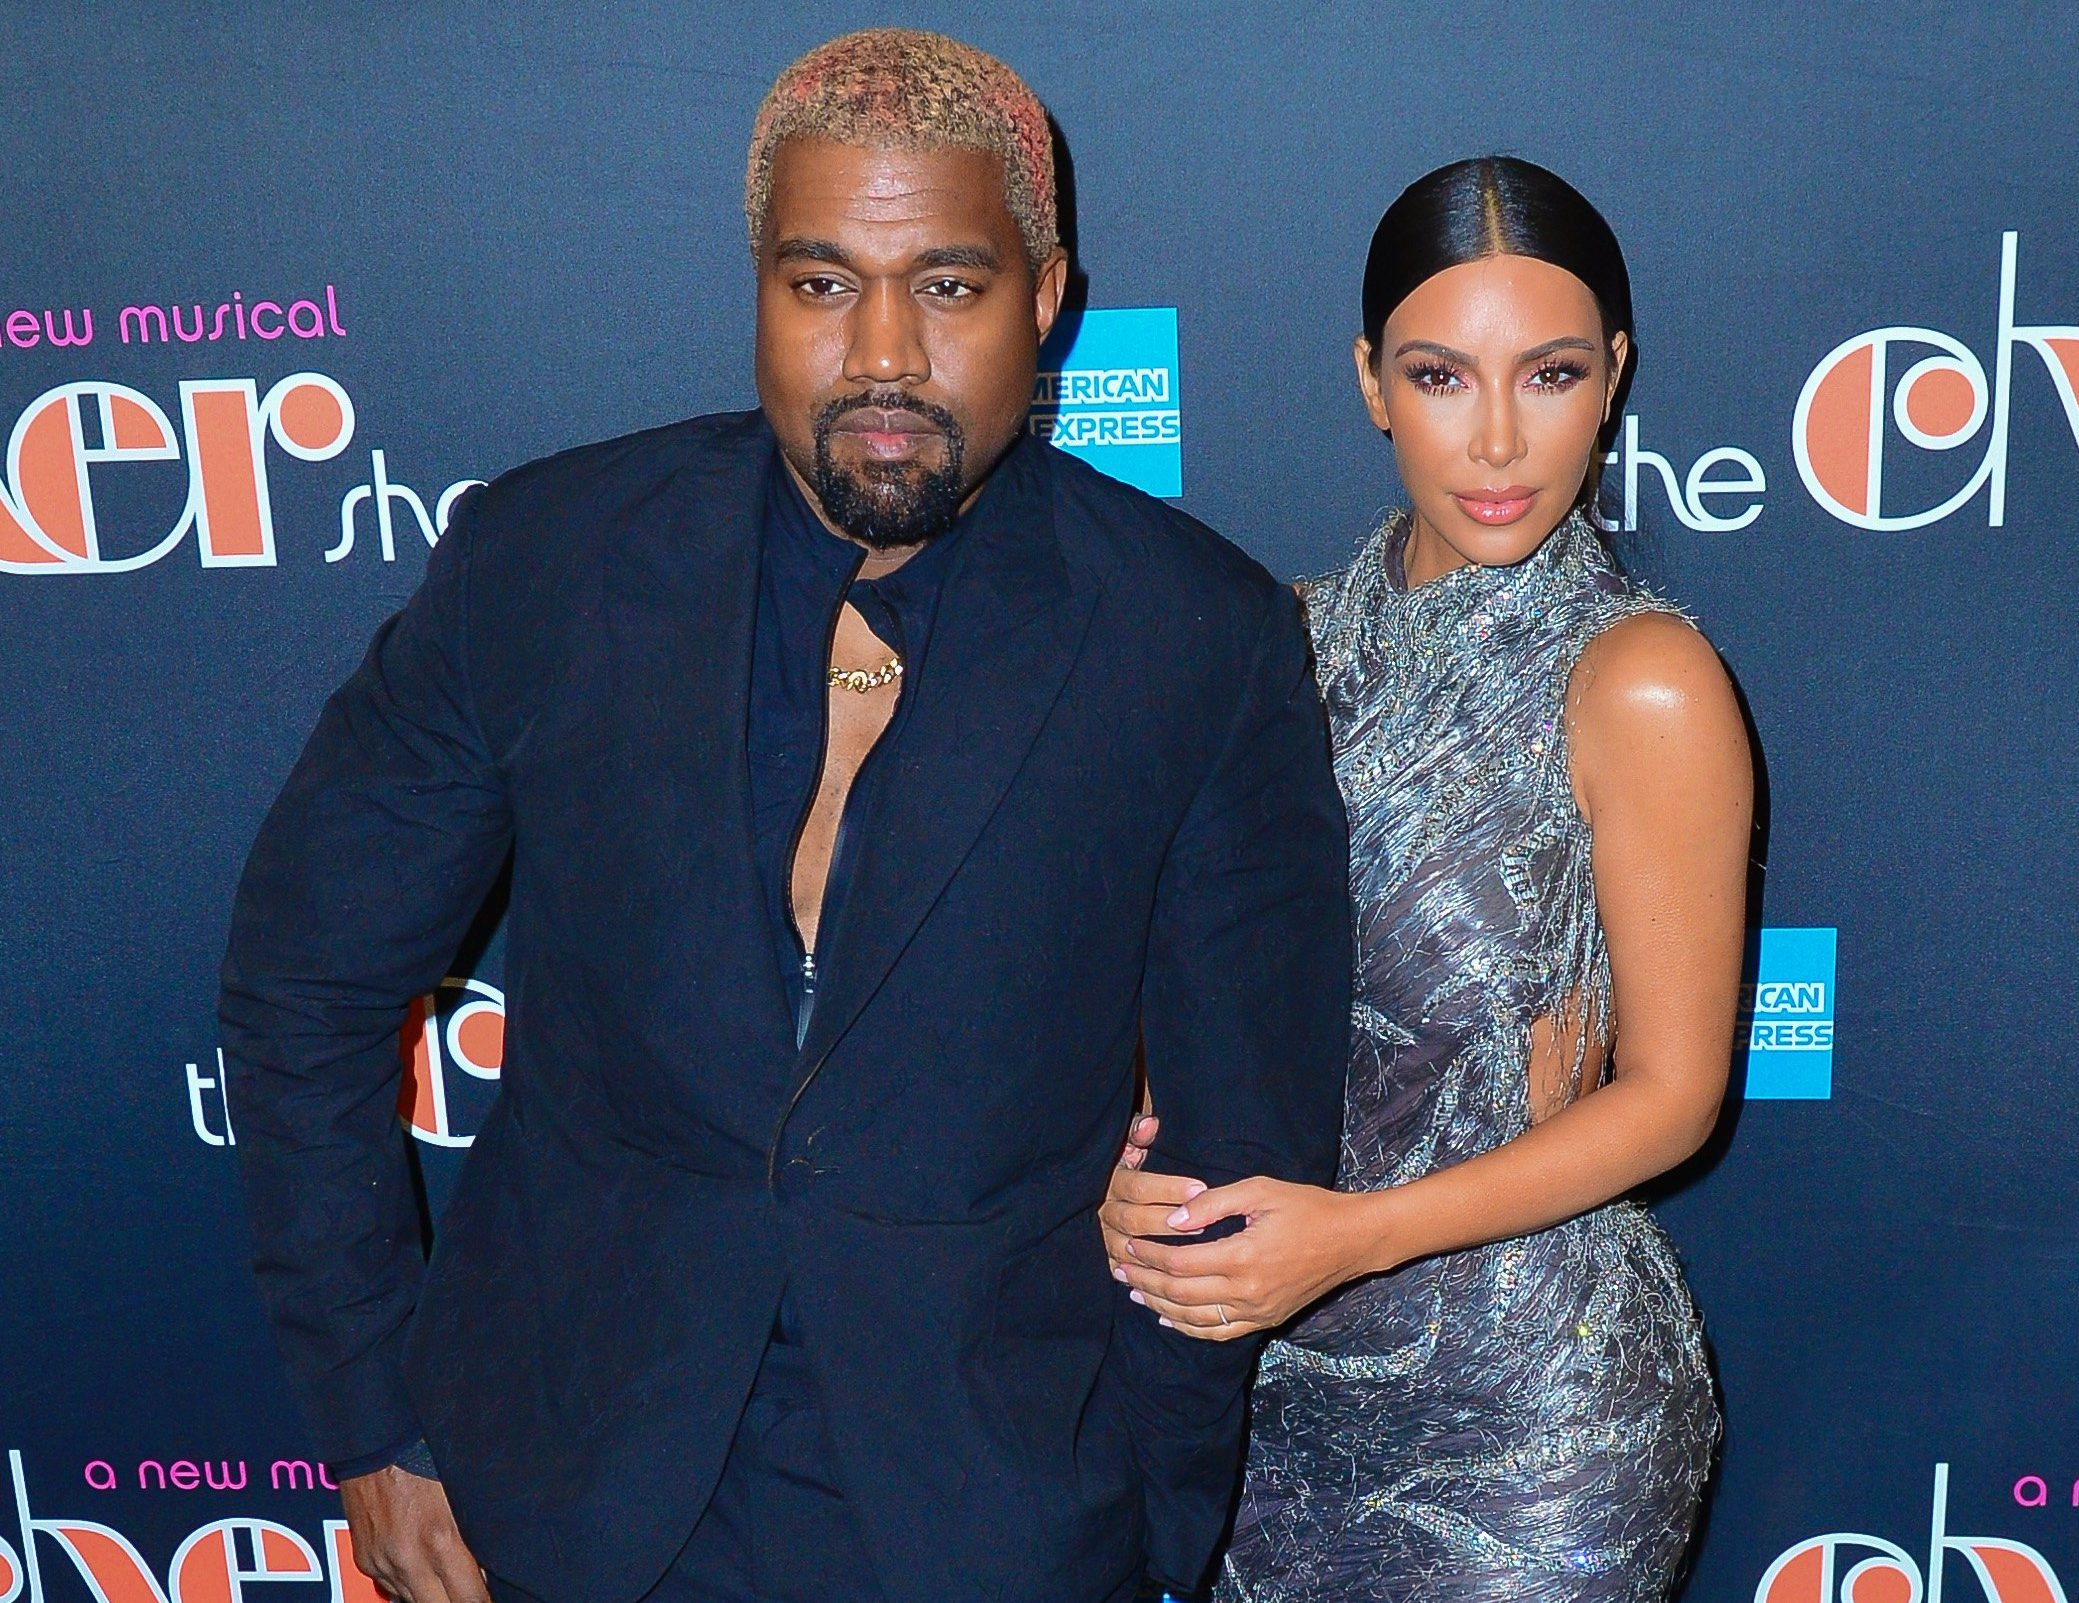 Kim Kardashian and Kanye West hit the red carpet for Cher's new musical on Broadway. 03 Dec 2018 Pictured: Kim Kardashian and Kanye West. Photo credit: MEGA TheMegaAgency.com +1 888 505 6342